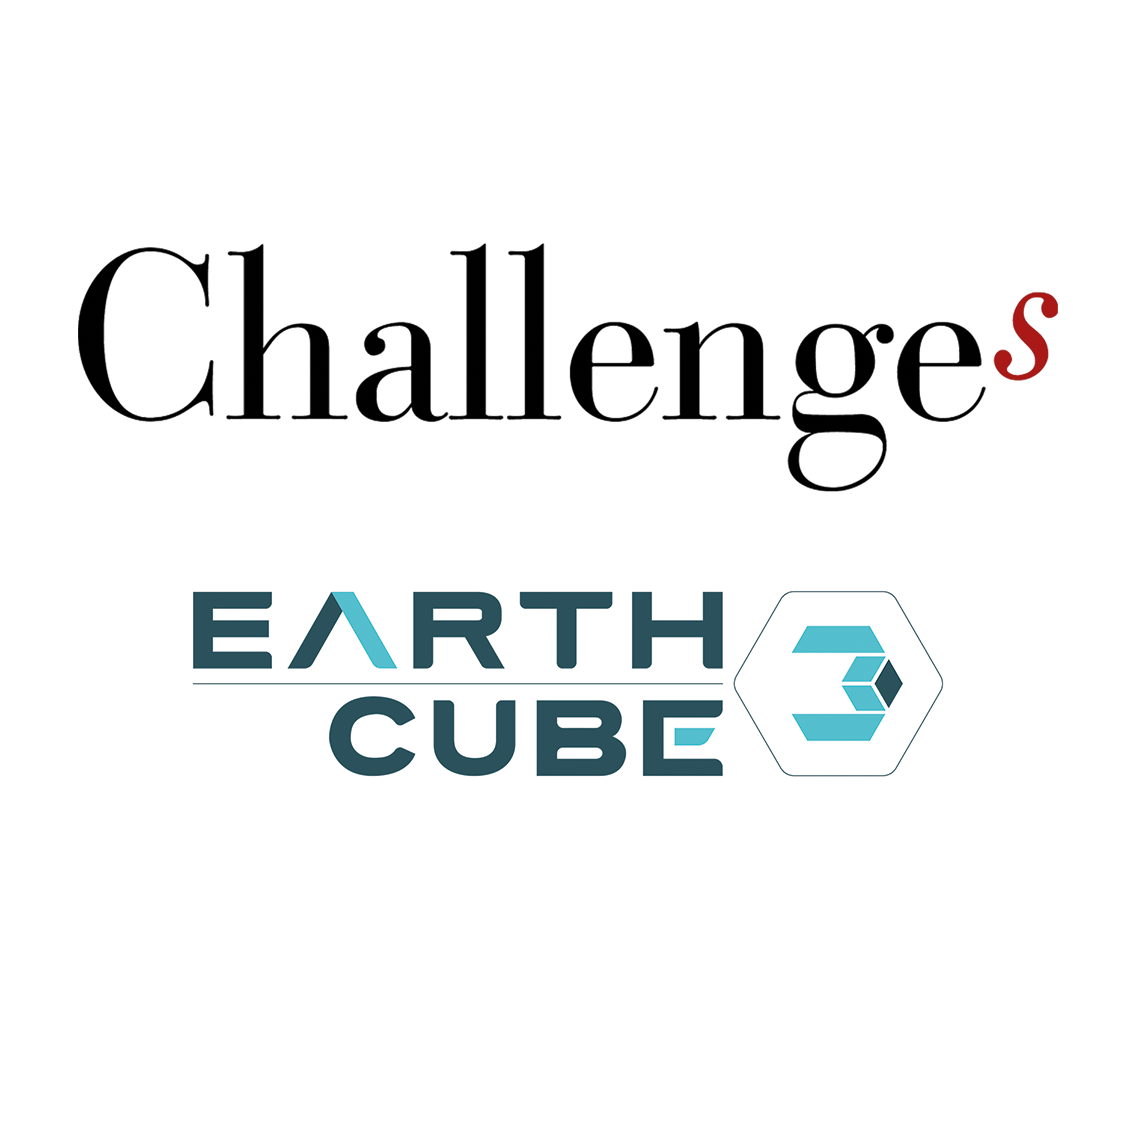 Earthcube overshoots its competitors